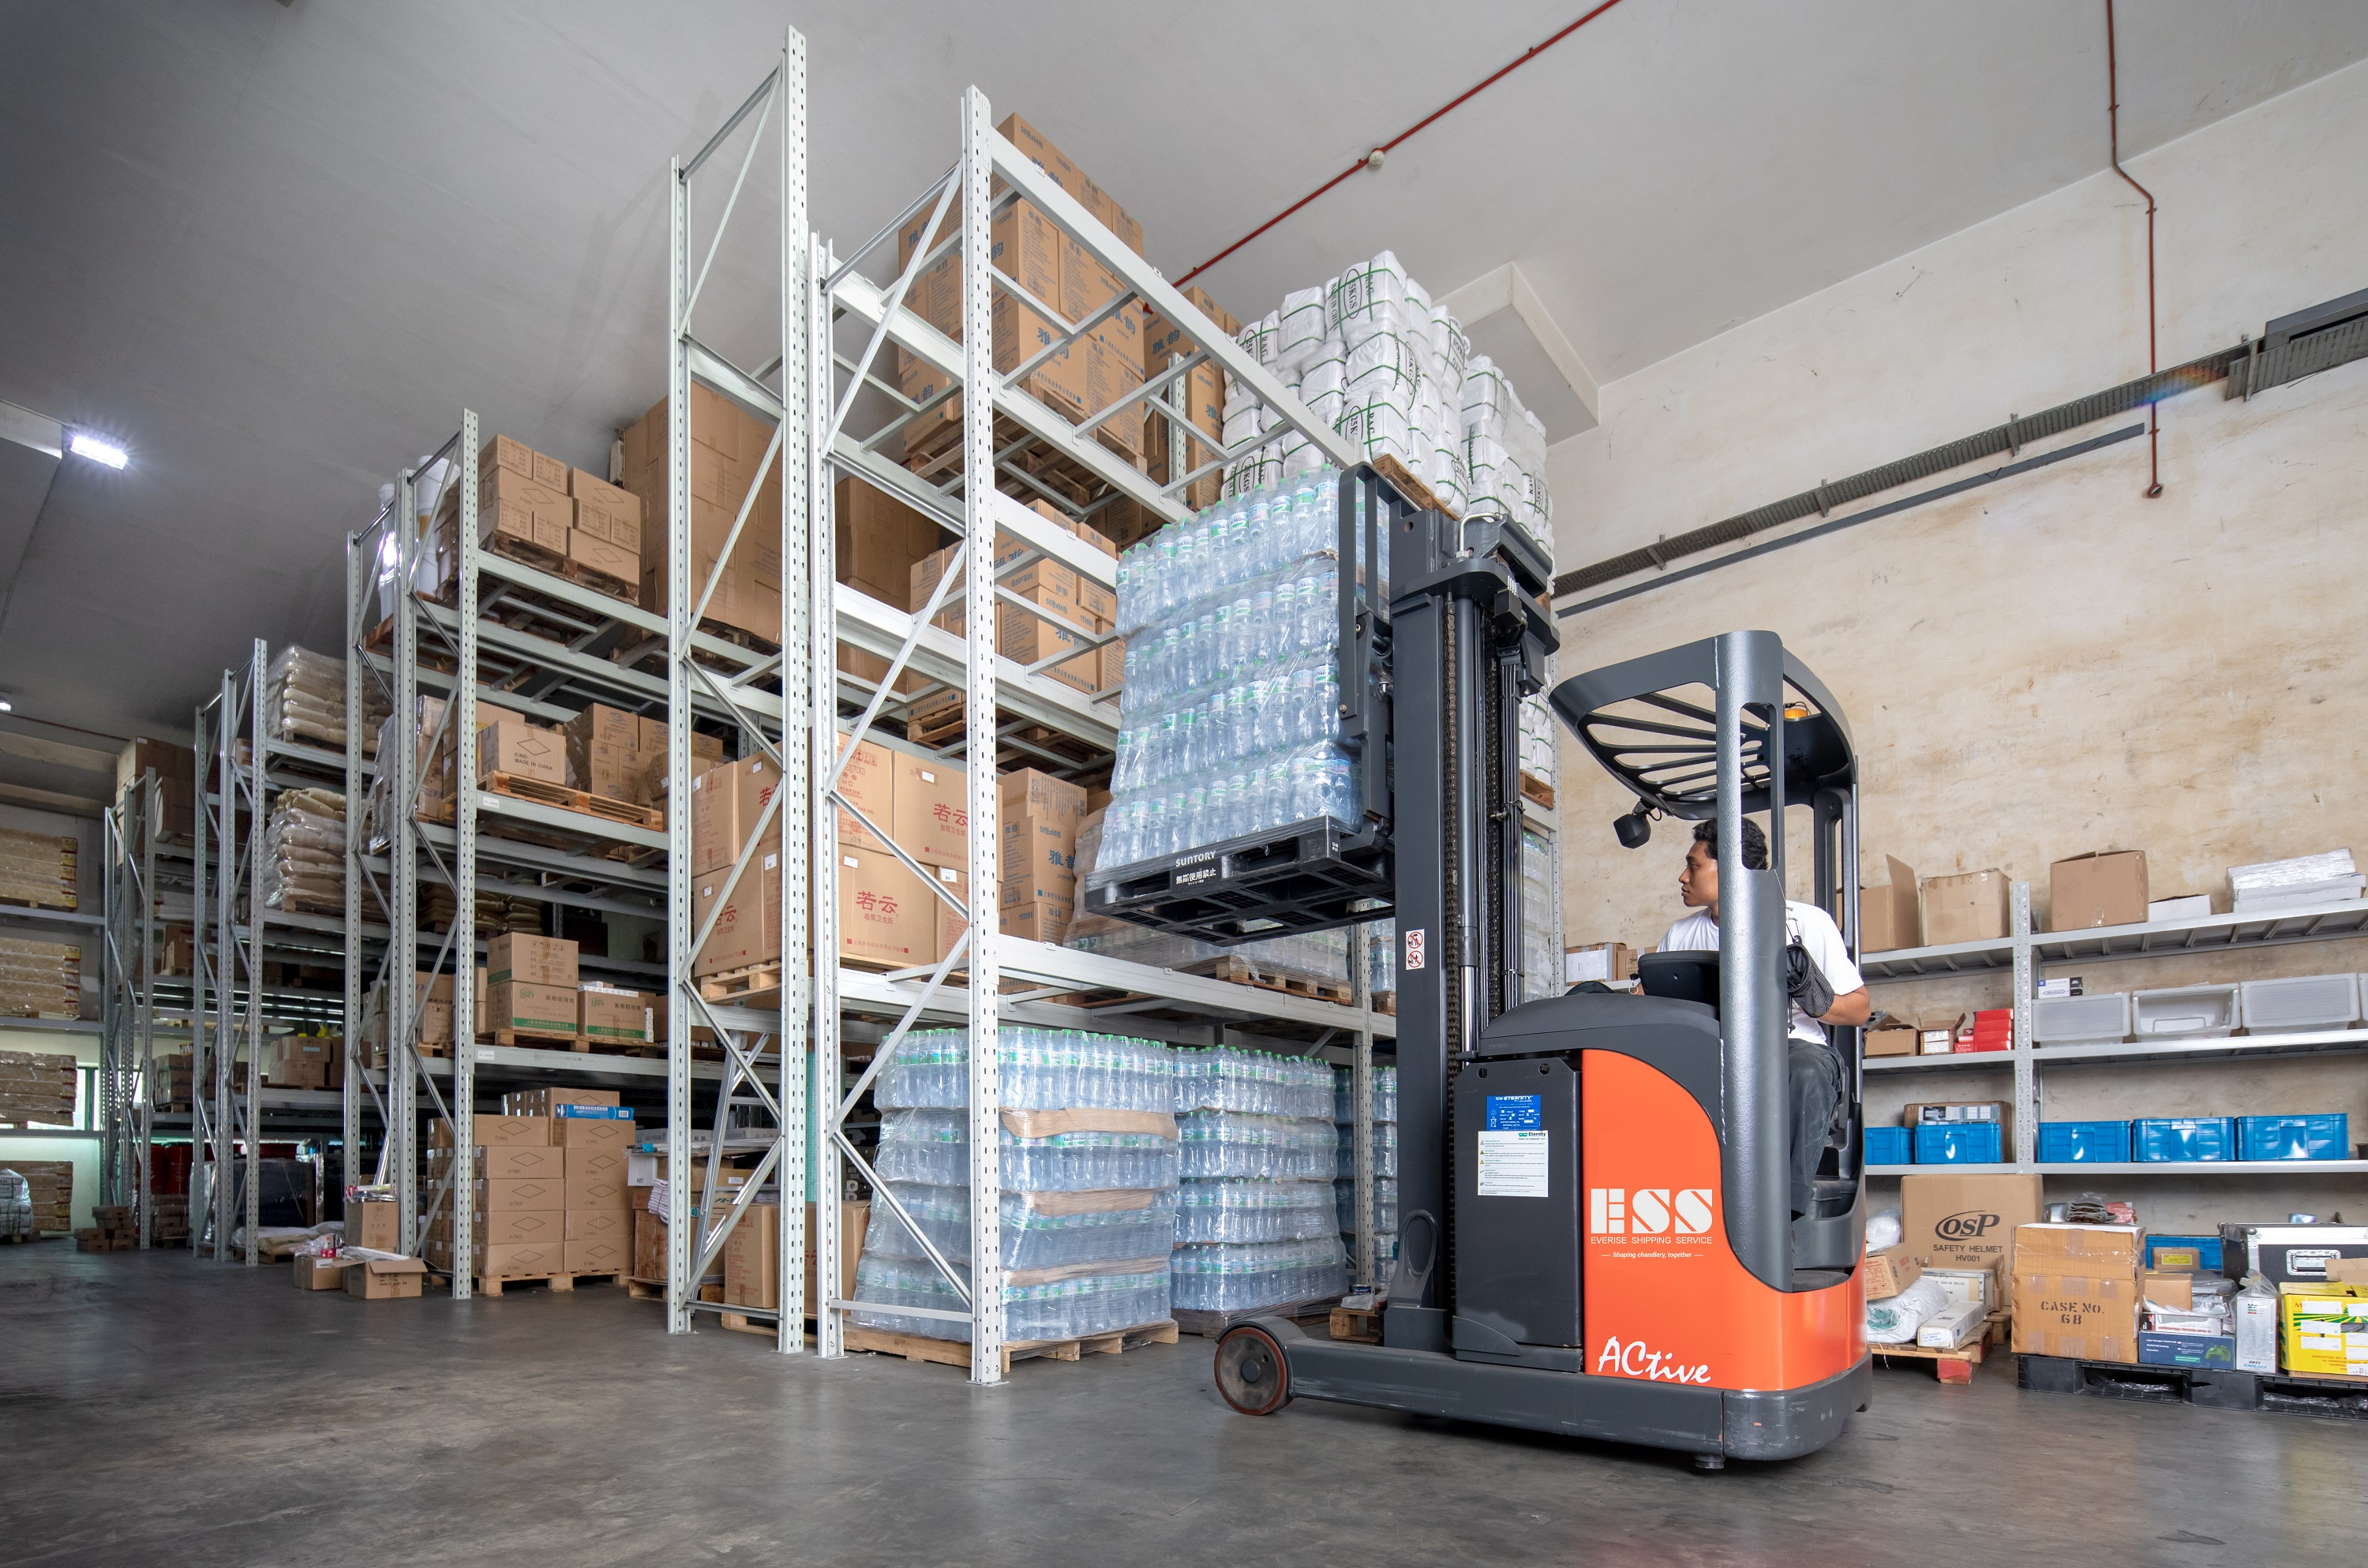 Own Warehouse, Everise Shipping Service, Technology at work